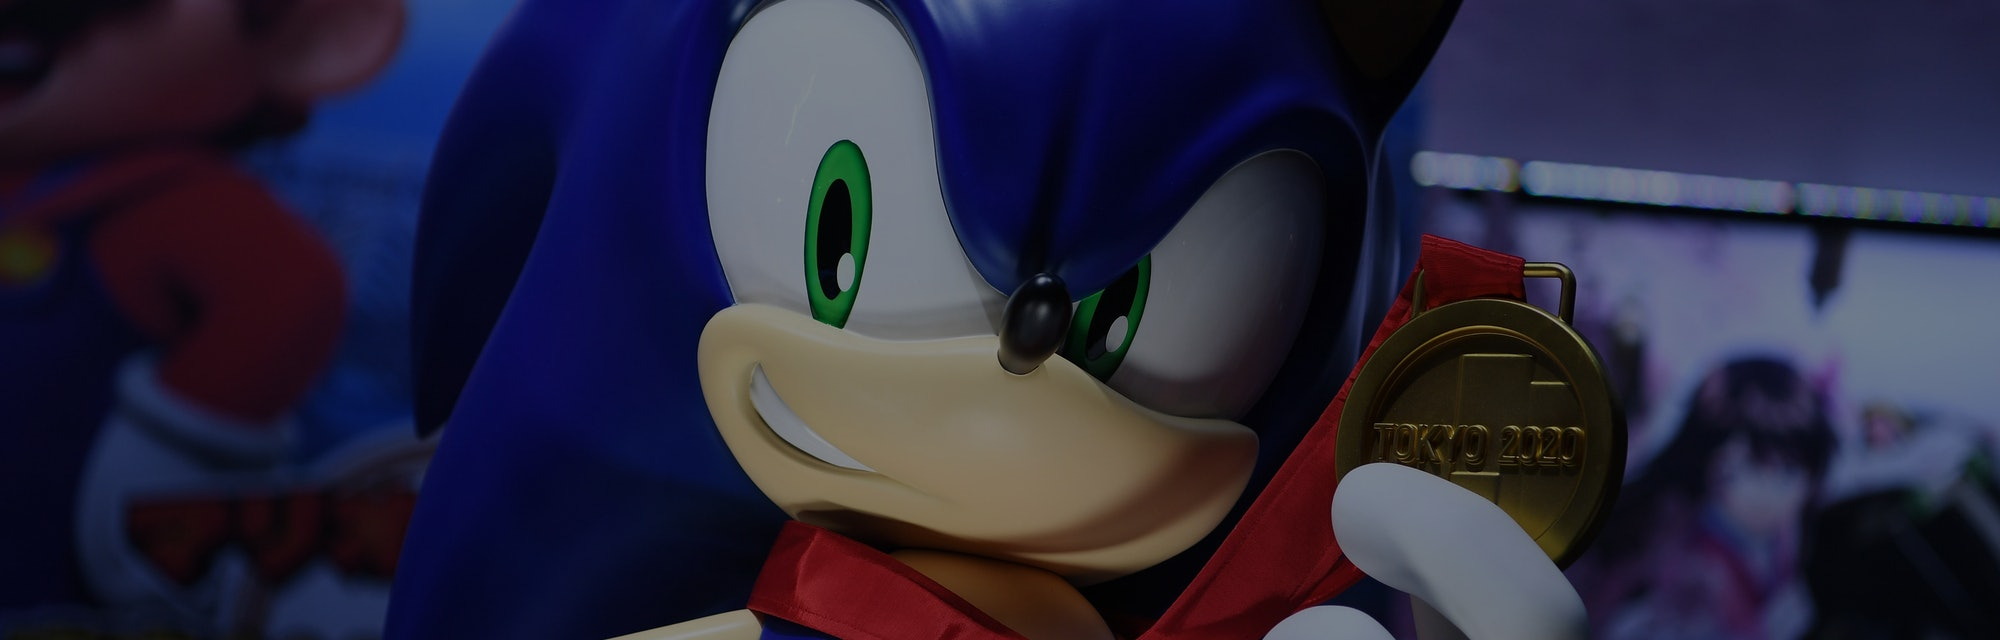 A large figure based onSonic the hedgehog can be seen looking directly at the camera.